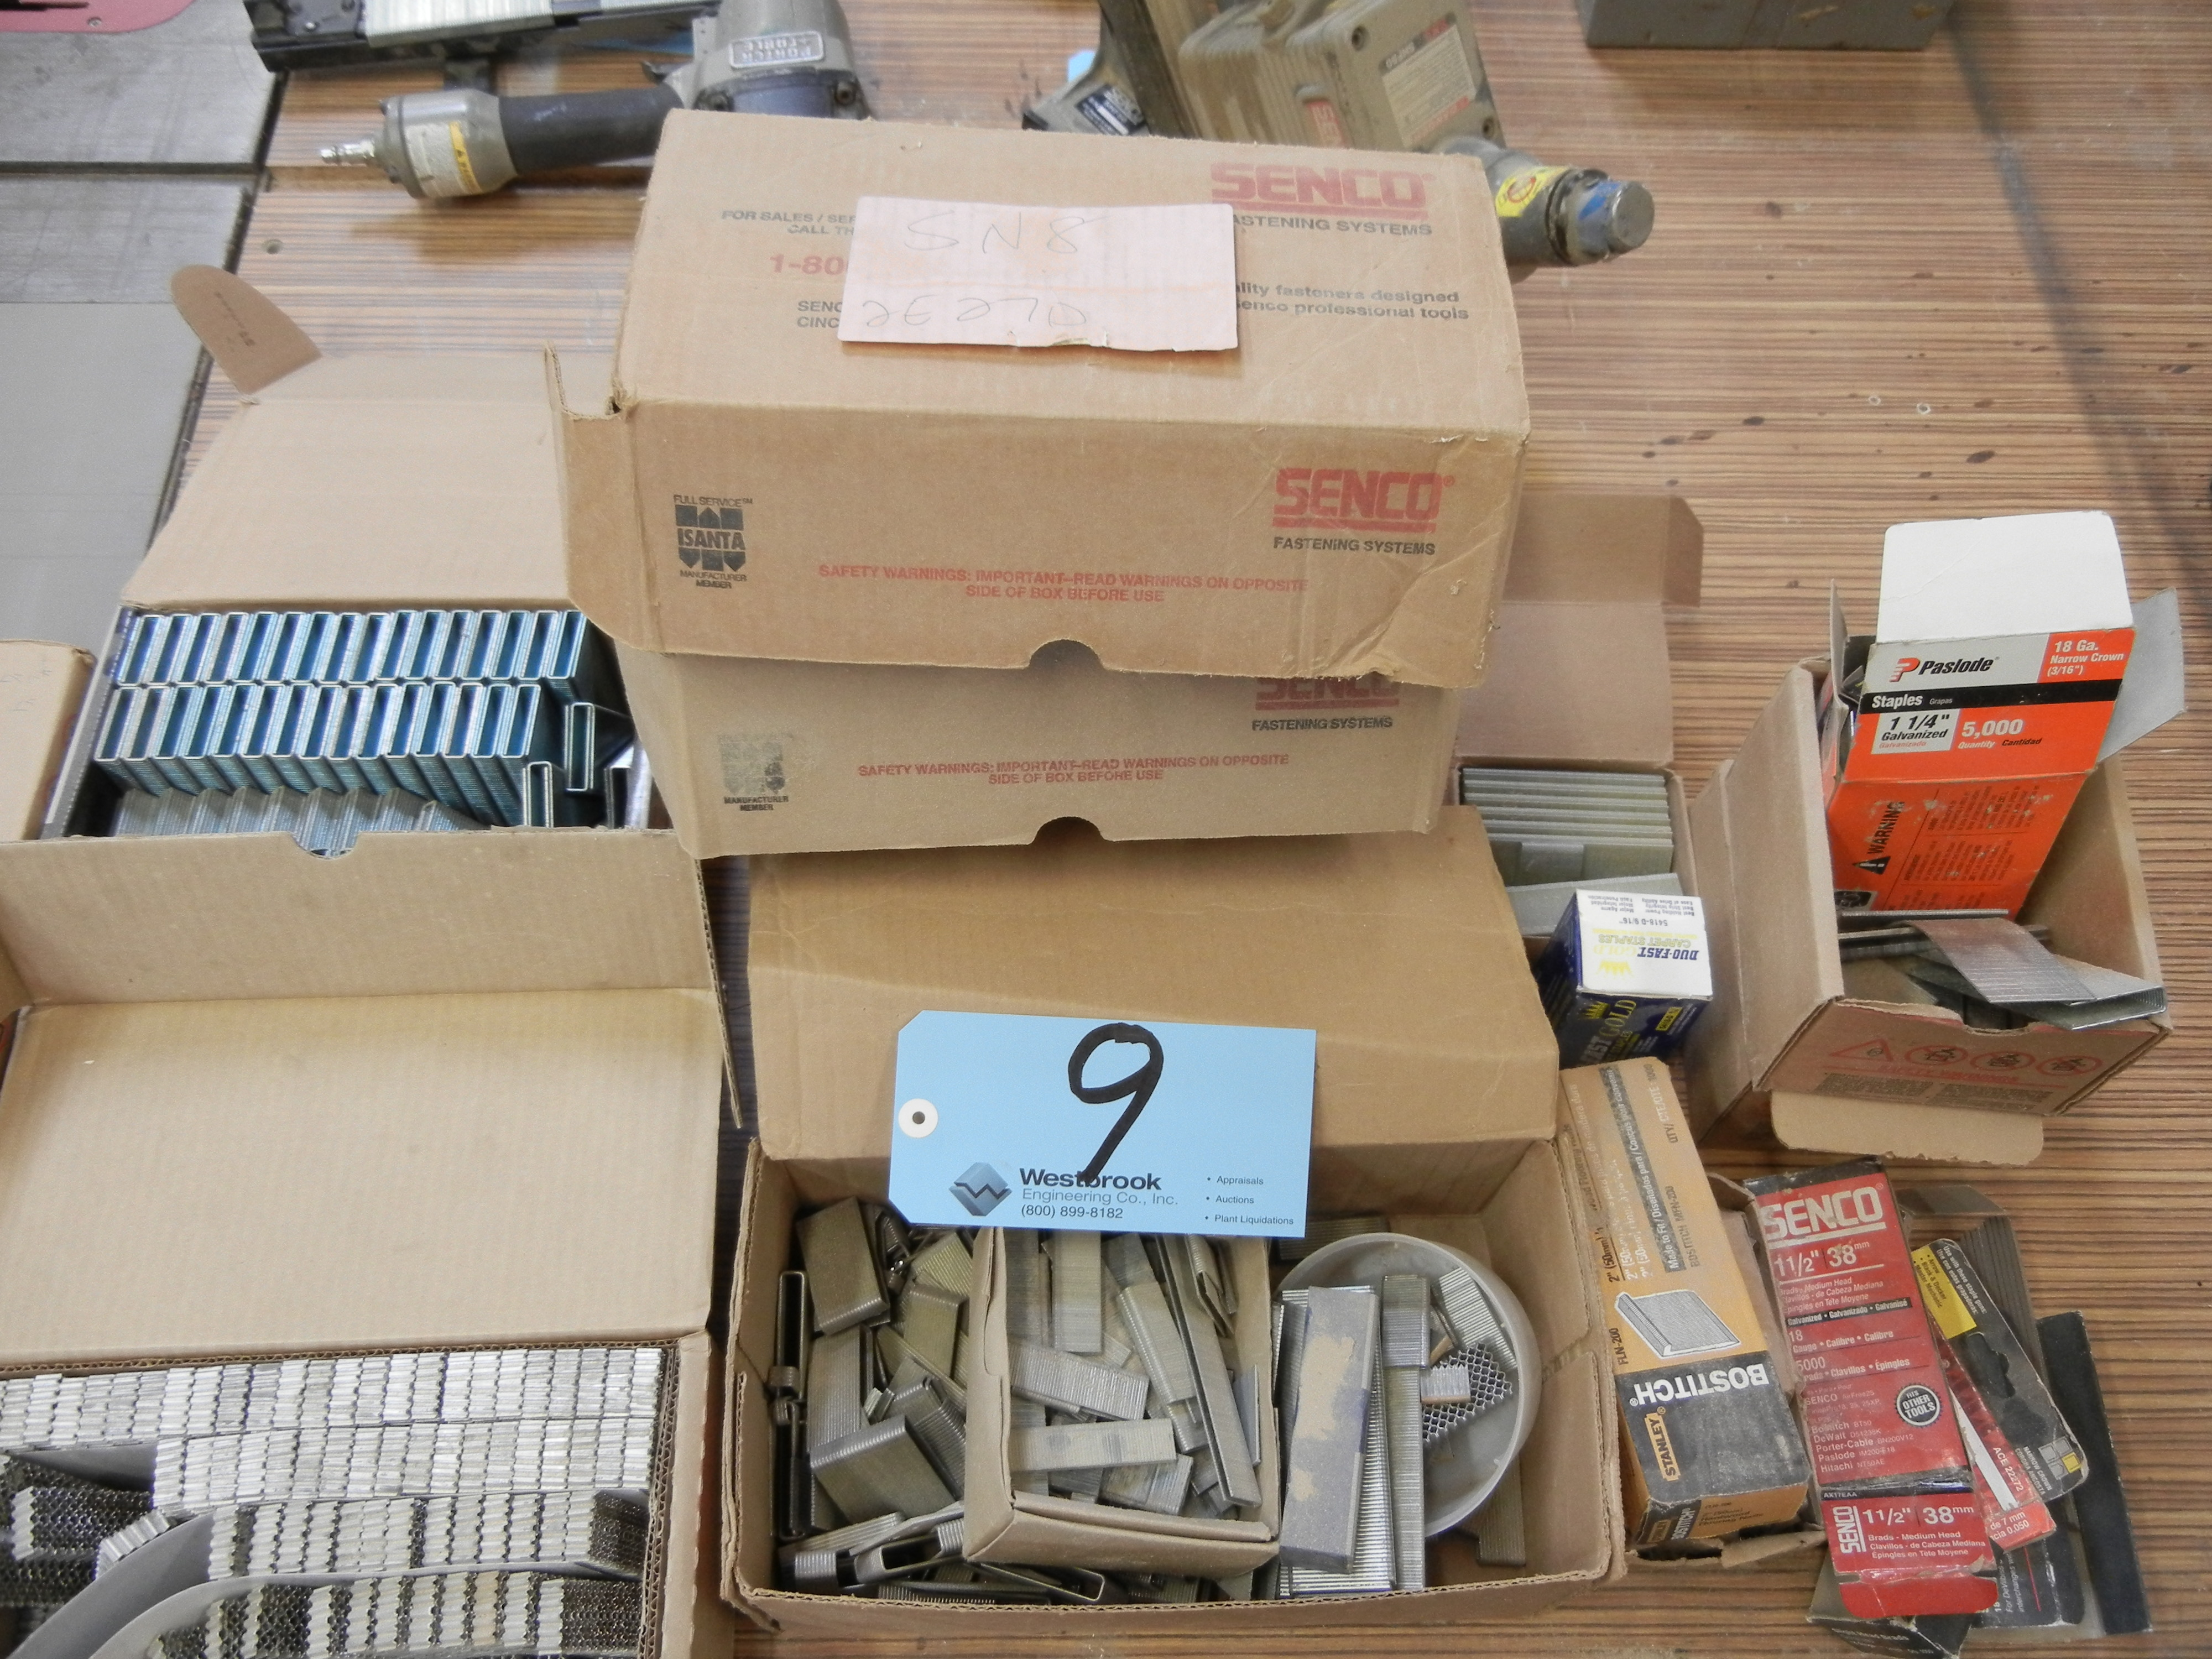 Lot-Assorted Staples and Crown Fasteners - Image 2 of 4